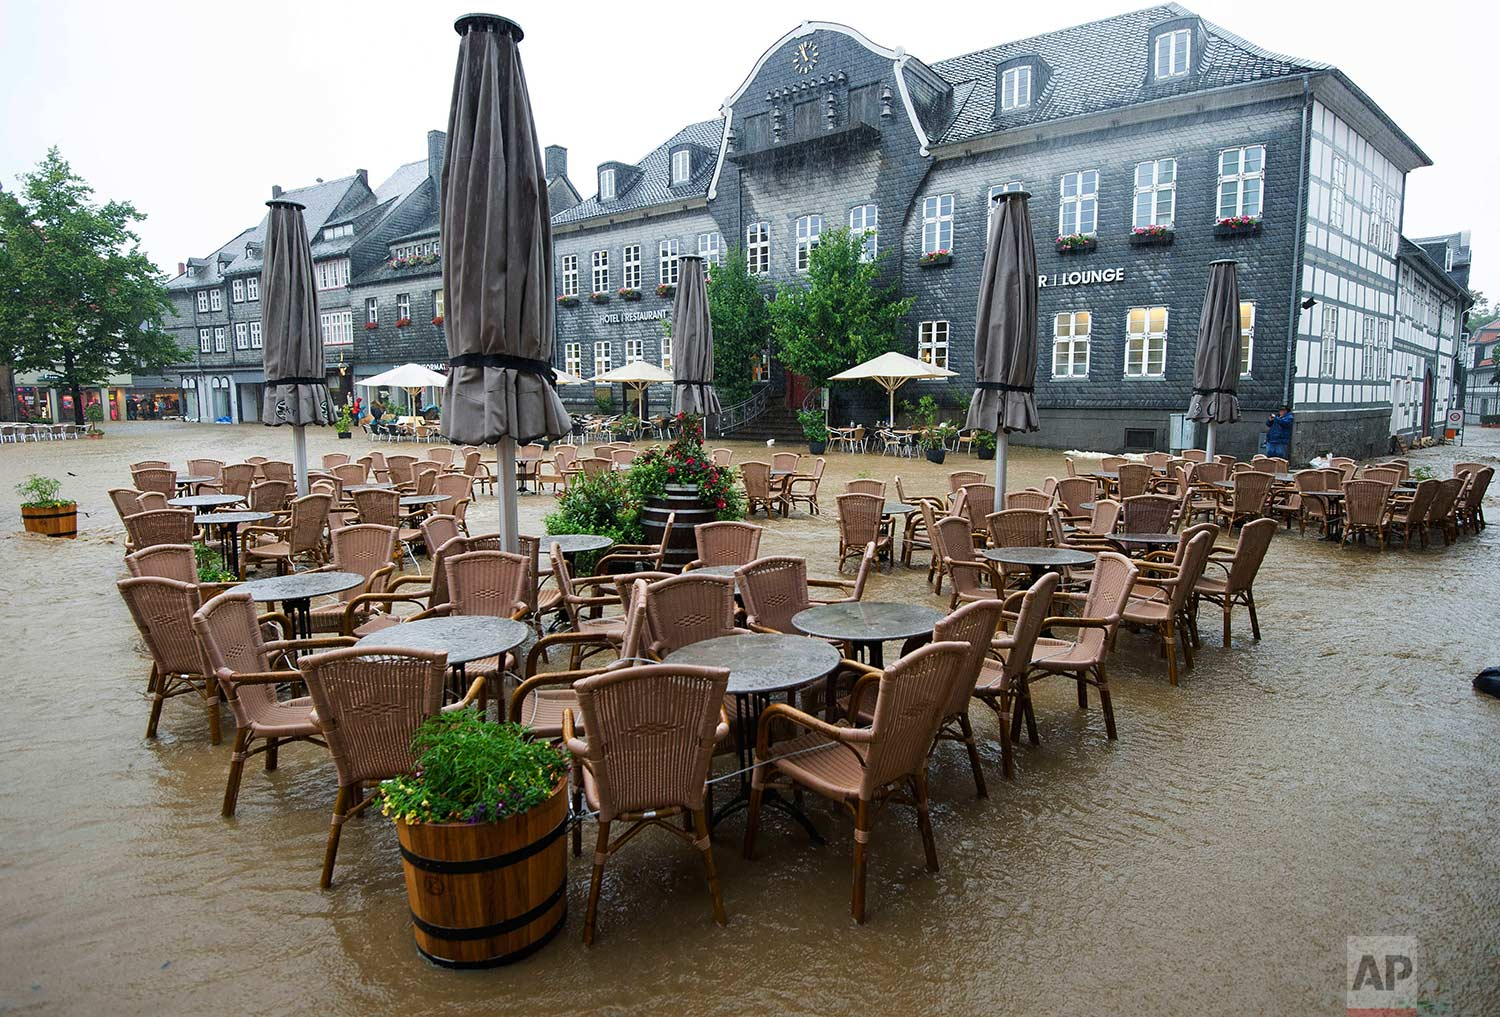 Tables and chairs of a cafe sit empty in the flooded Marktplatz square in Goslar, Germany, Wednesday, July 26, 2017. (Swen Pfoertner/dpa via AP)